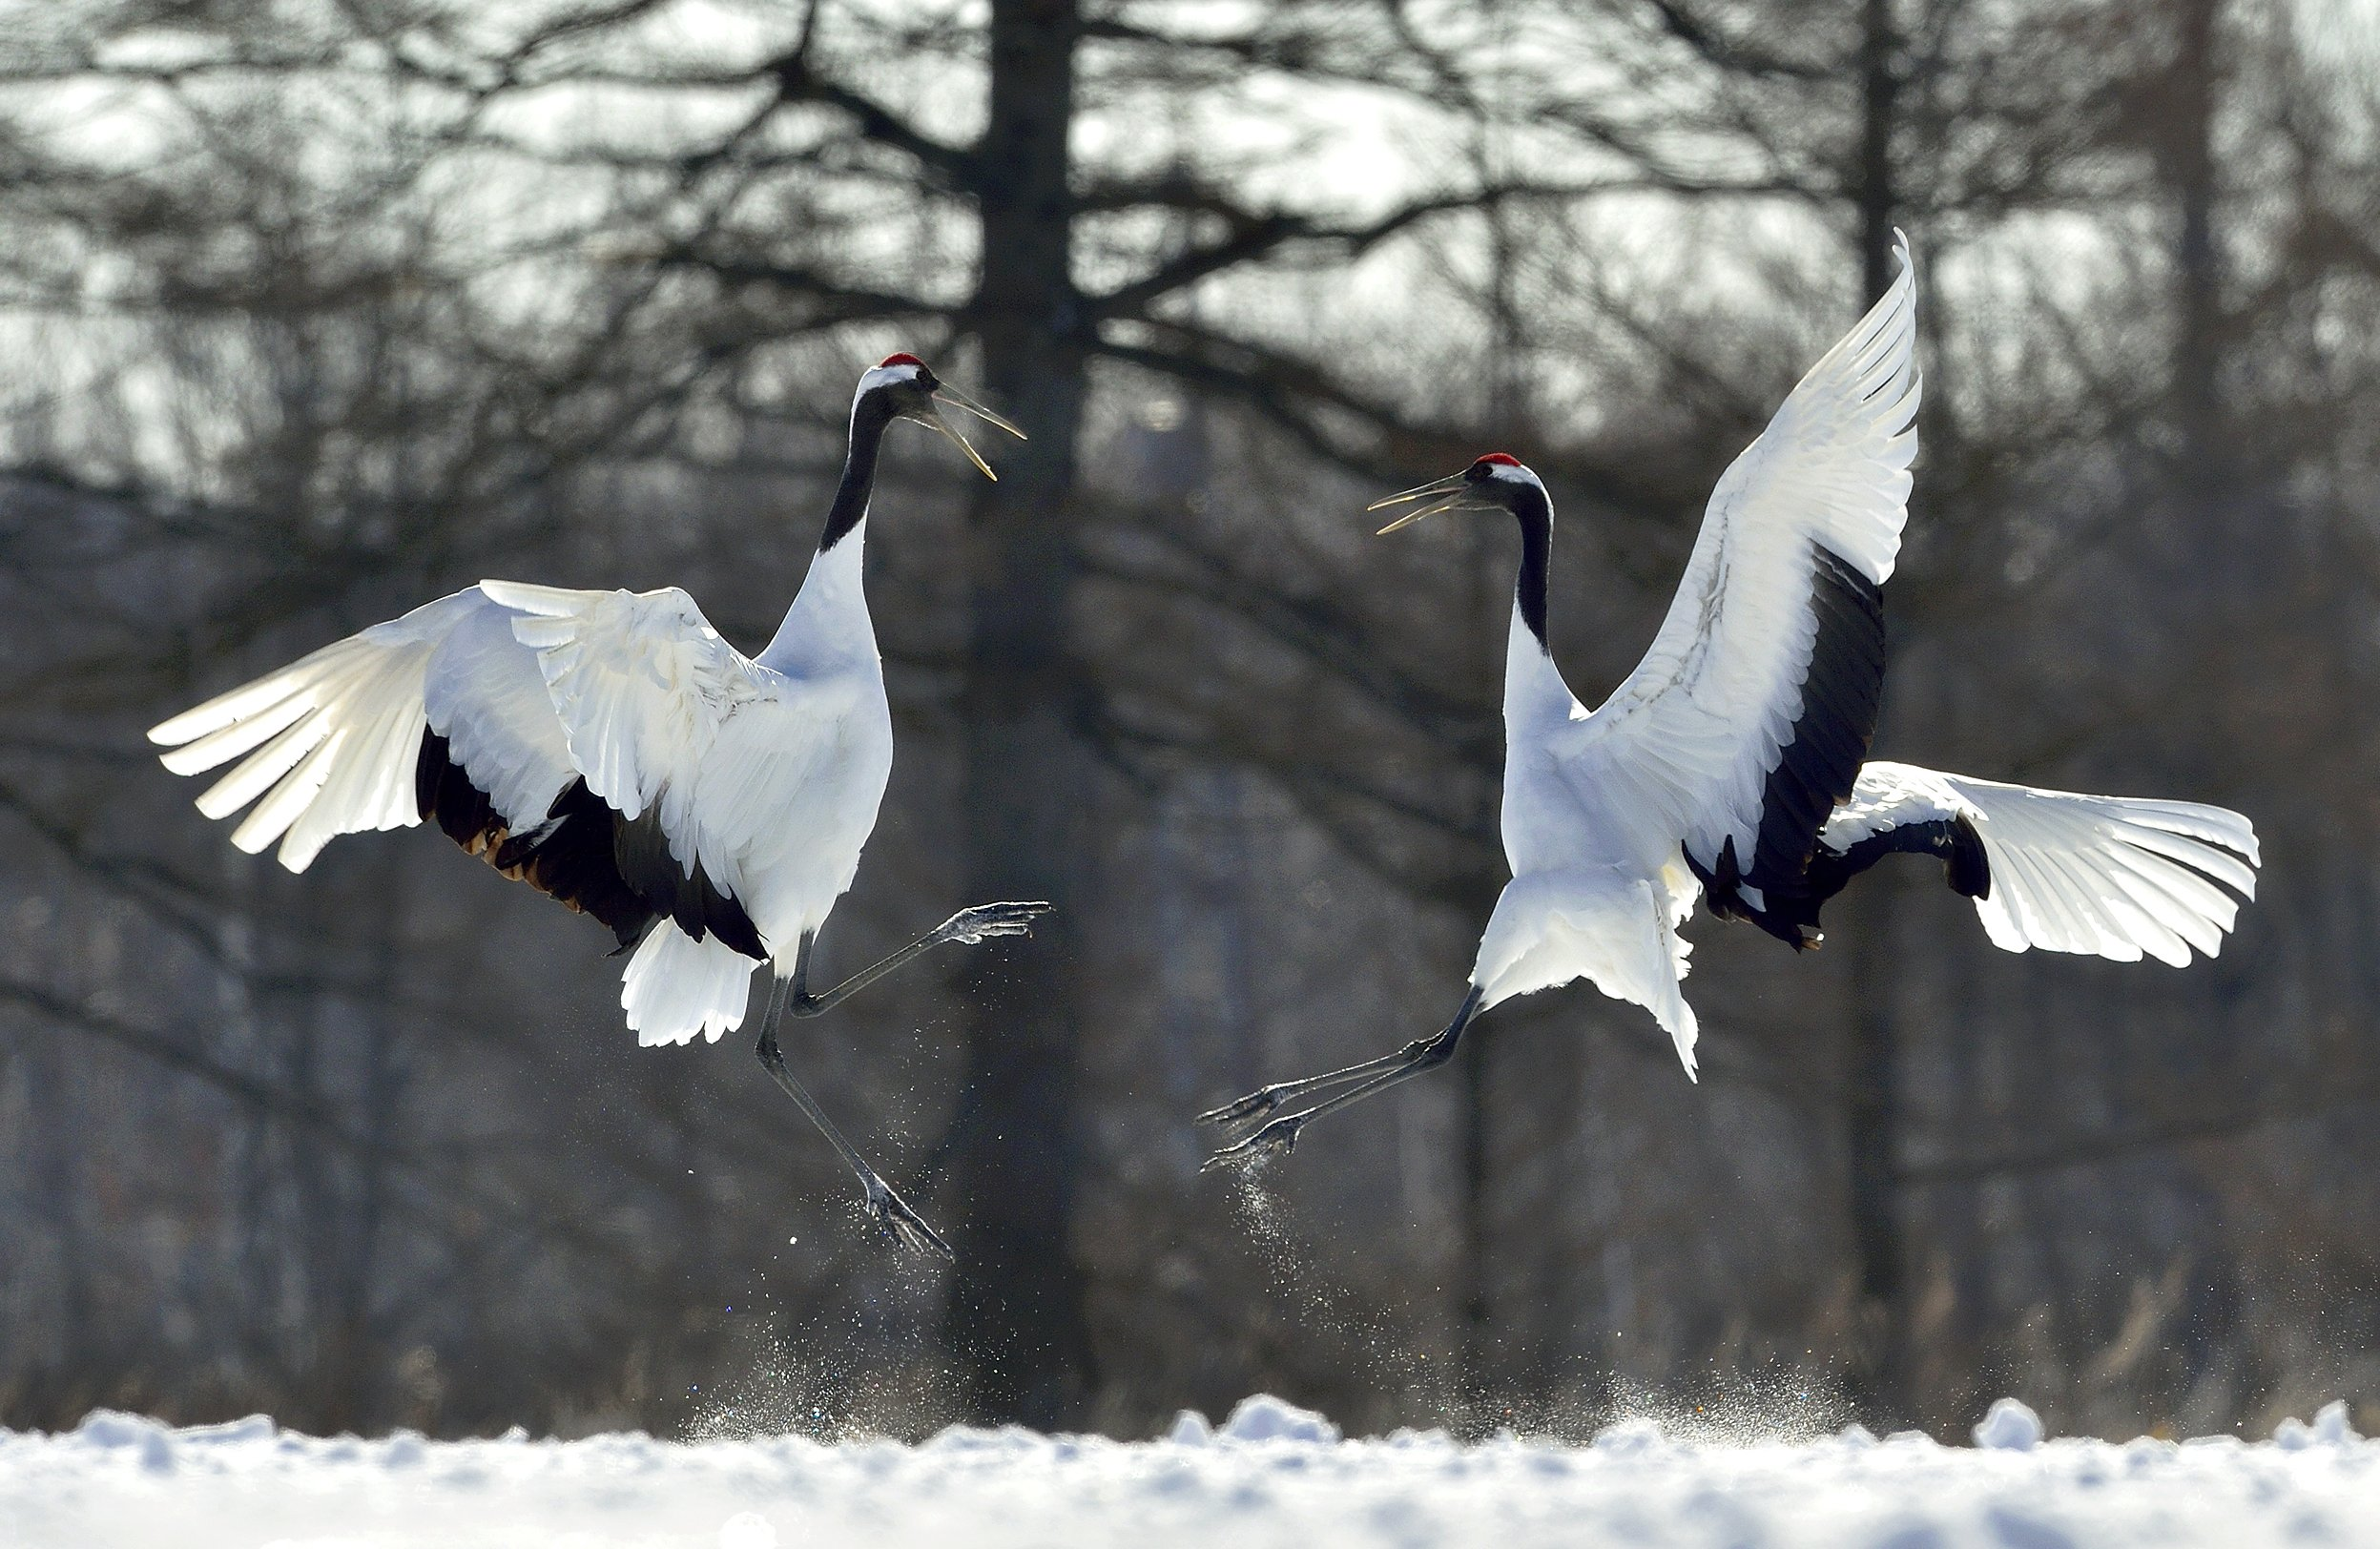 japanese crane, winter, manchurian crane,red-crowned crane,grus japonensis,bird, nature, animal, Сергей Урядников